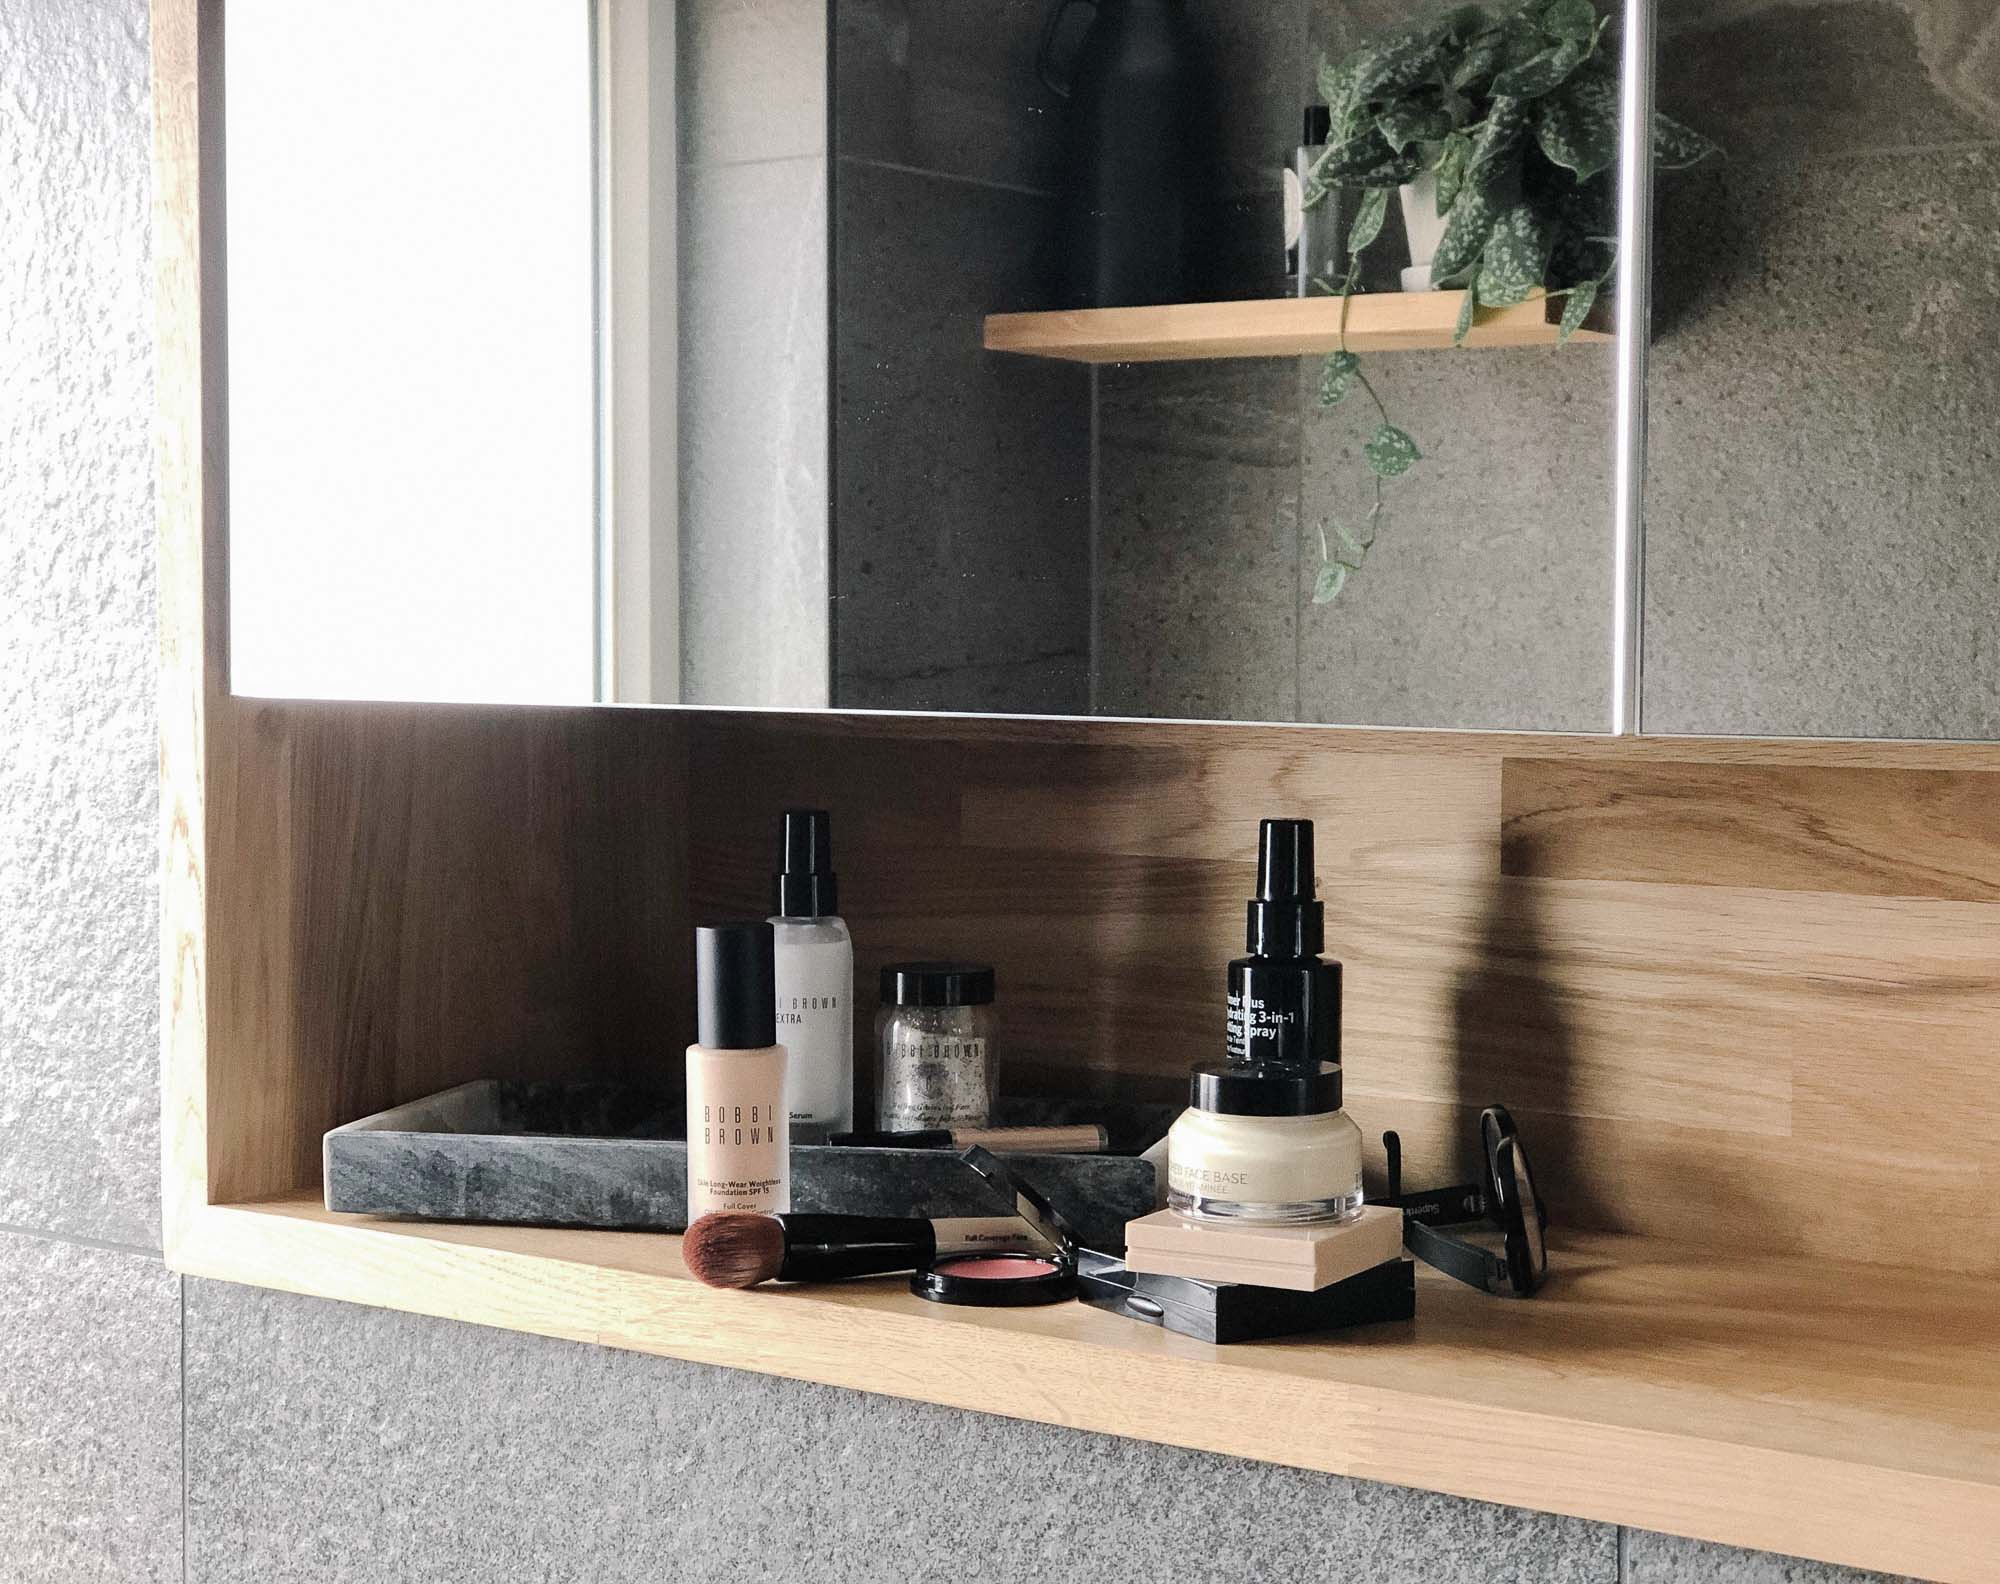 3 Bobbi Brown products in the bathroom.jpg